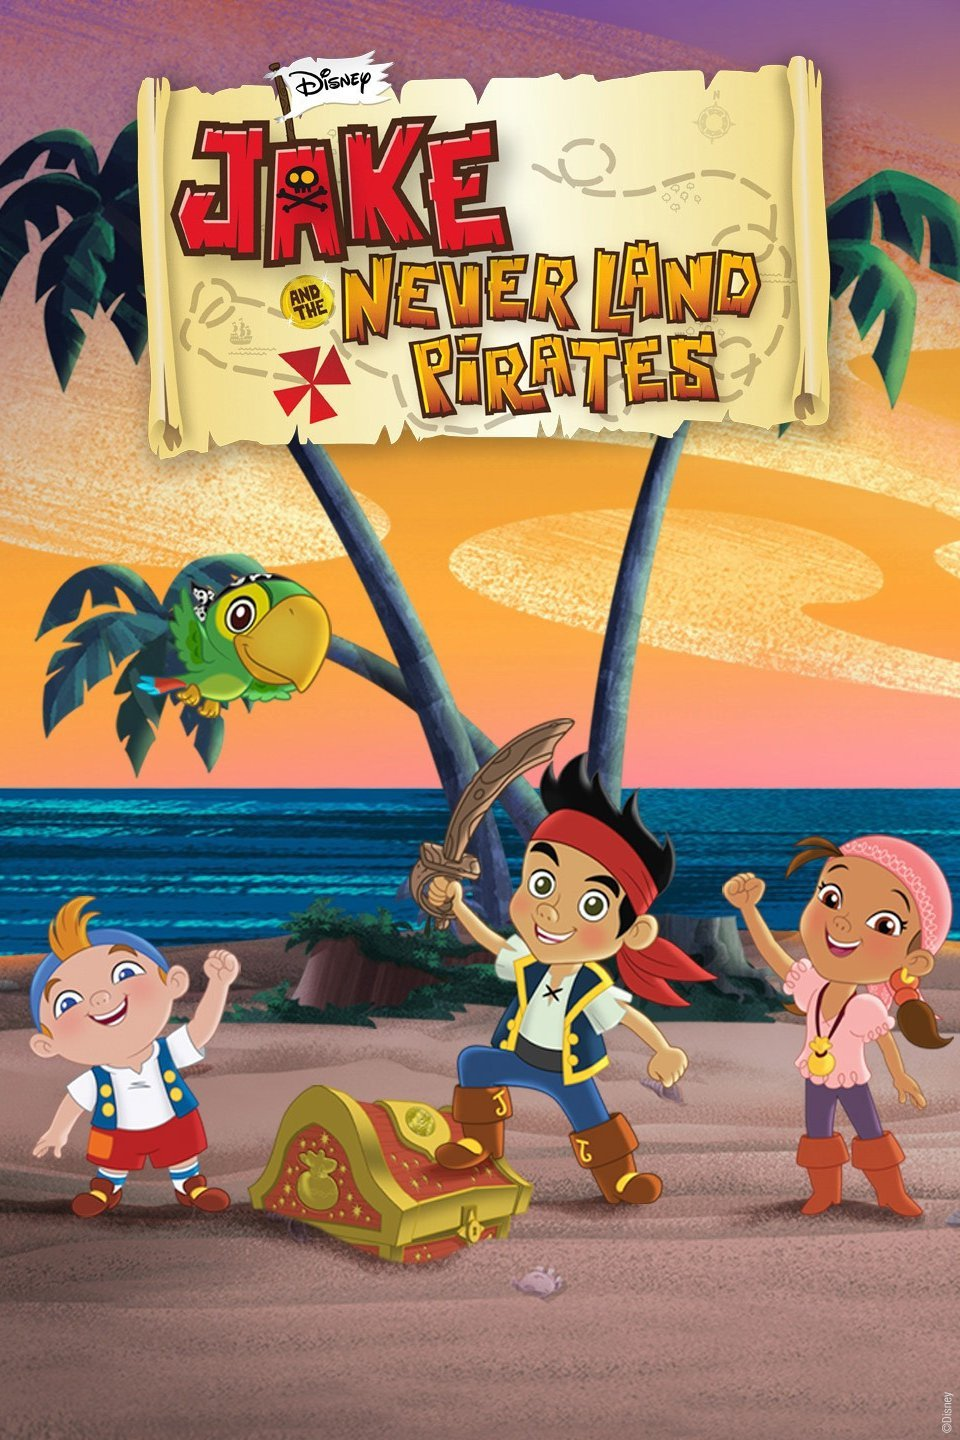 Jake and the Neverland Pirates, 2015 - Created by DisneyRole: Lead 3D Generalist (Season 4)Modelled, textured, and did minor rigging of props in painterly style with toon outlines. Optimized toon outline settings for quality.Programs used: Maya, PaintFX, Mudbox